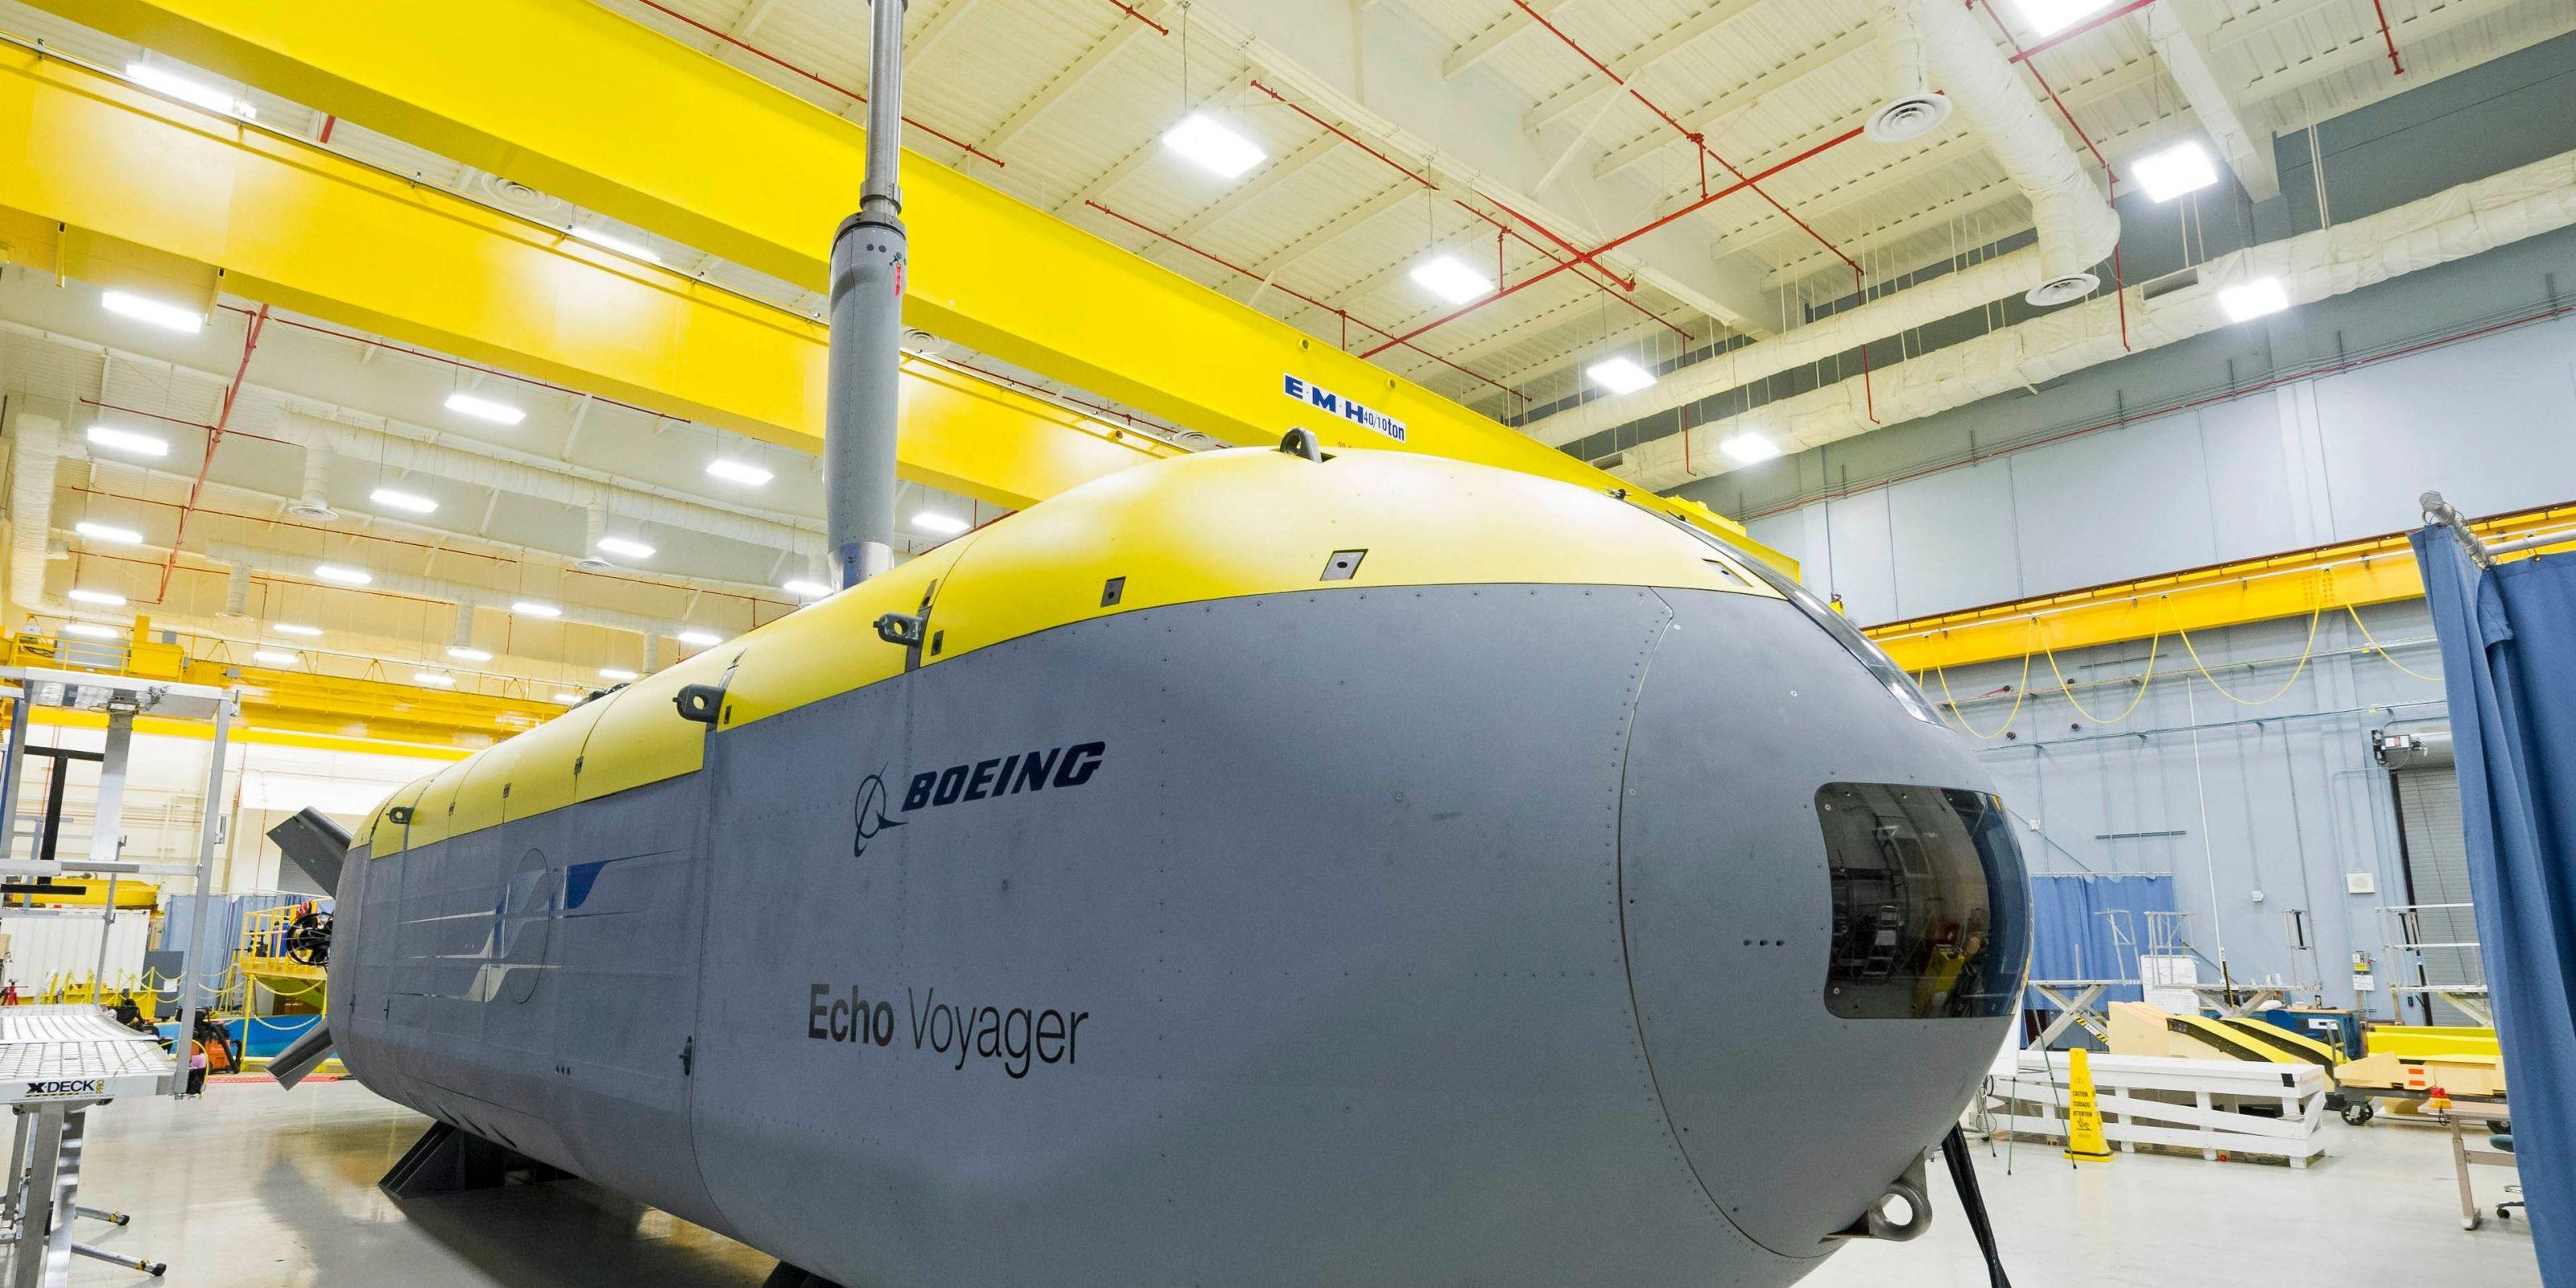 Boeing Has a Beast of a Submarine Ready to Autonomously Patrol the Ocean